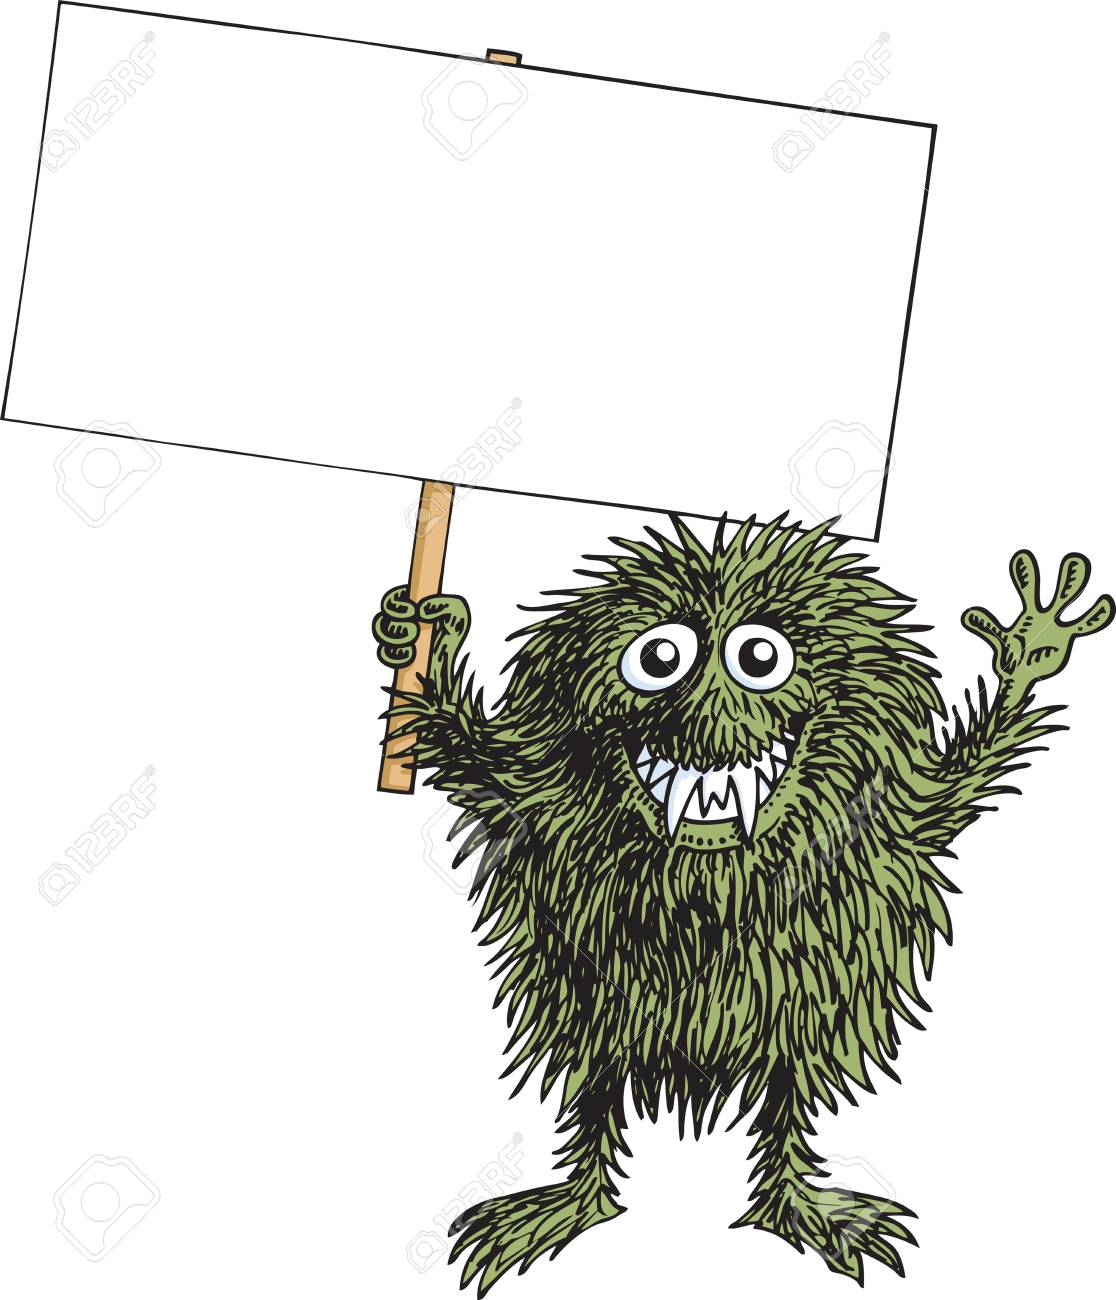 Protest Monster Stock Vector - 9646345